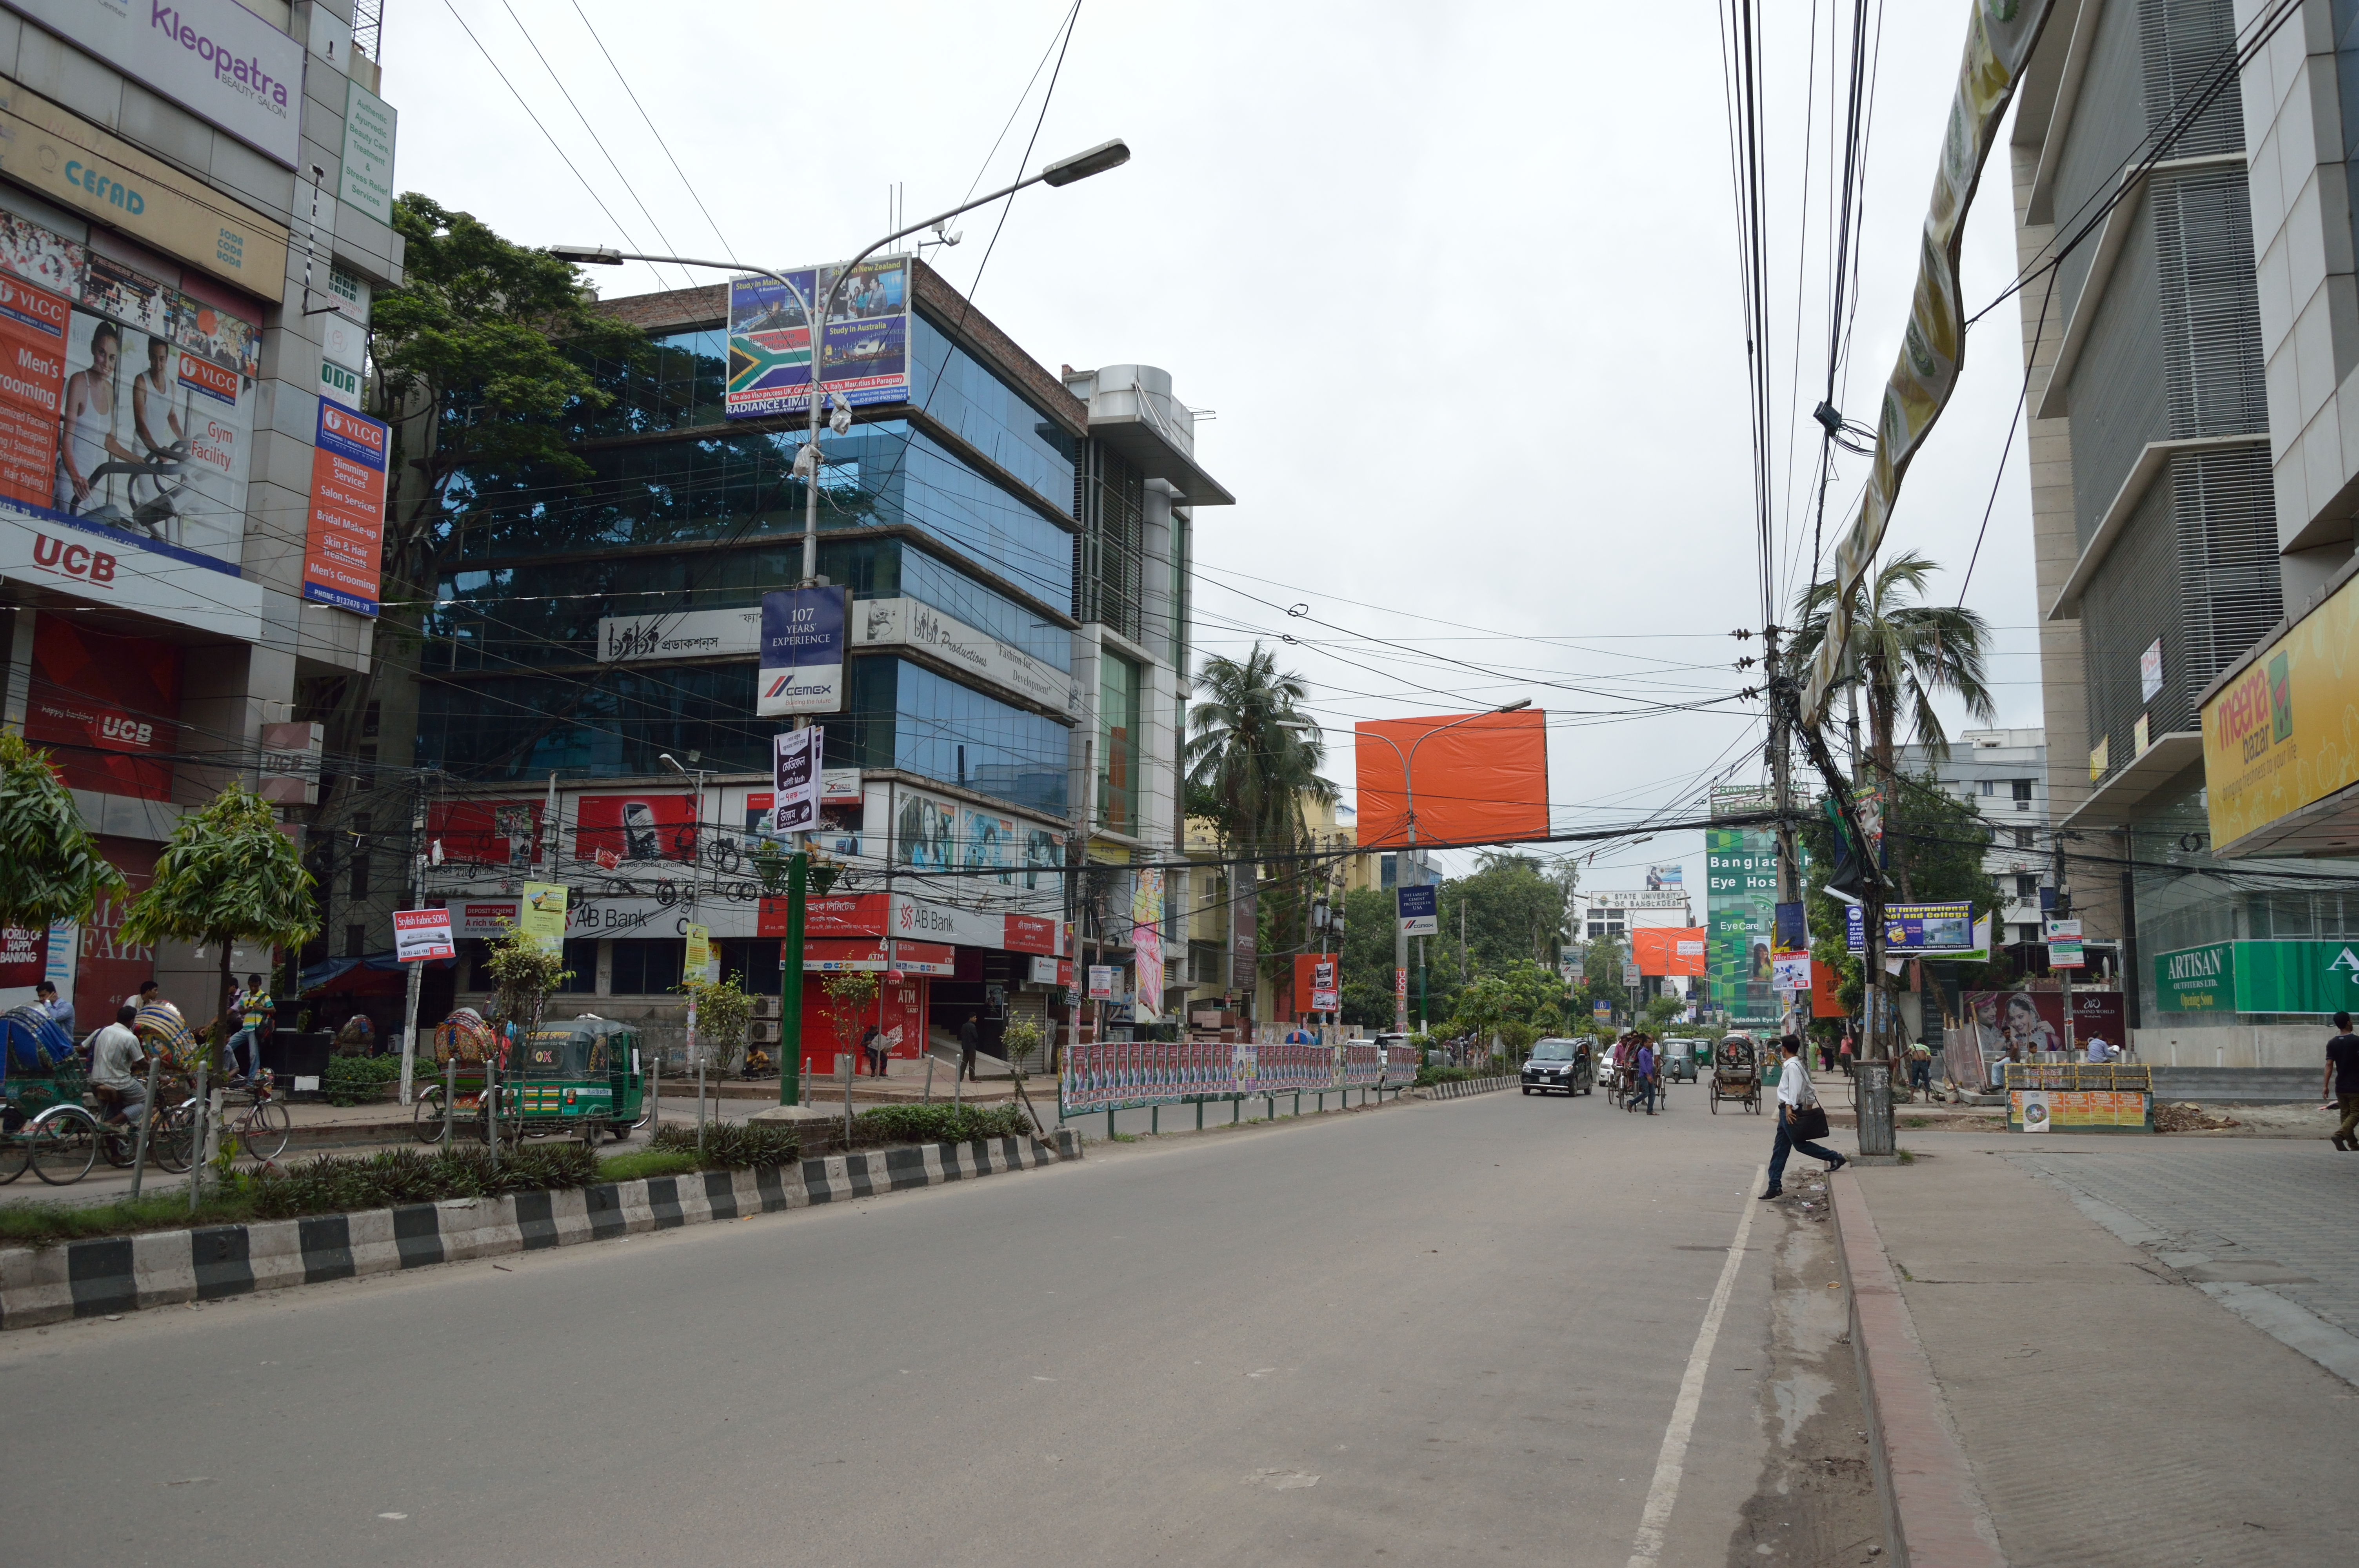 File:Road 16 - Dhanmondi Residential Area - Dhaka 2015-05-30 1446